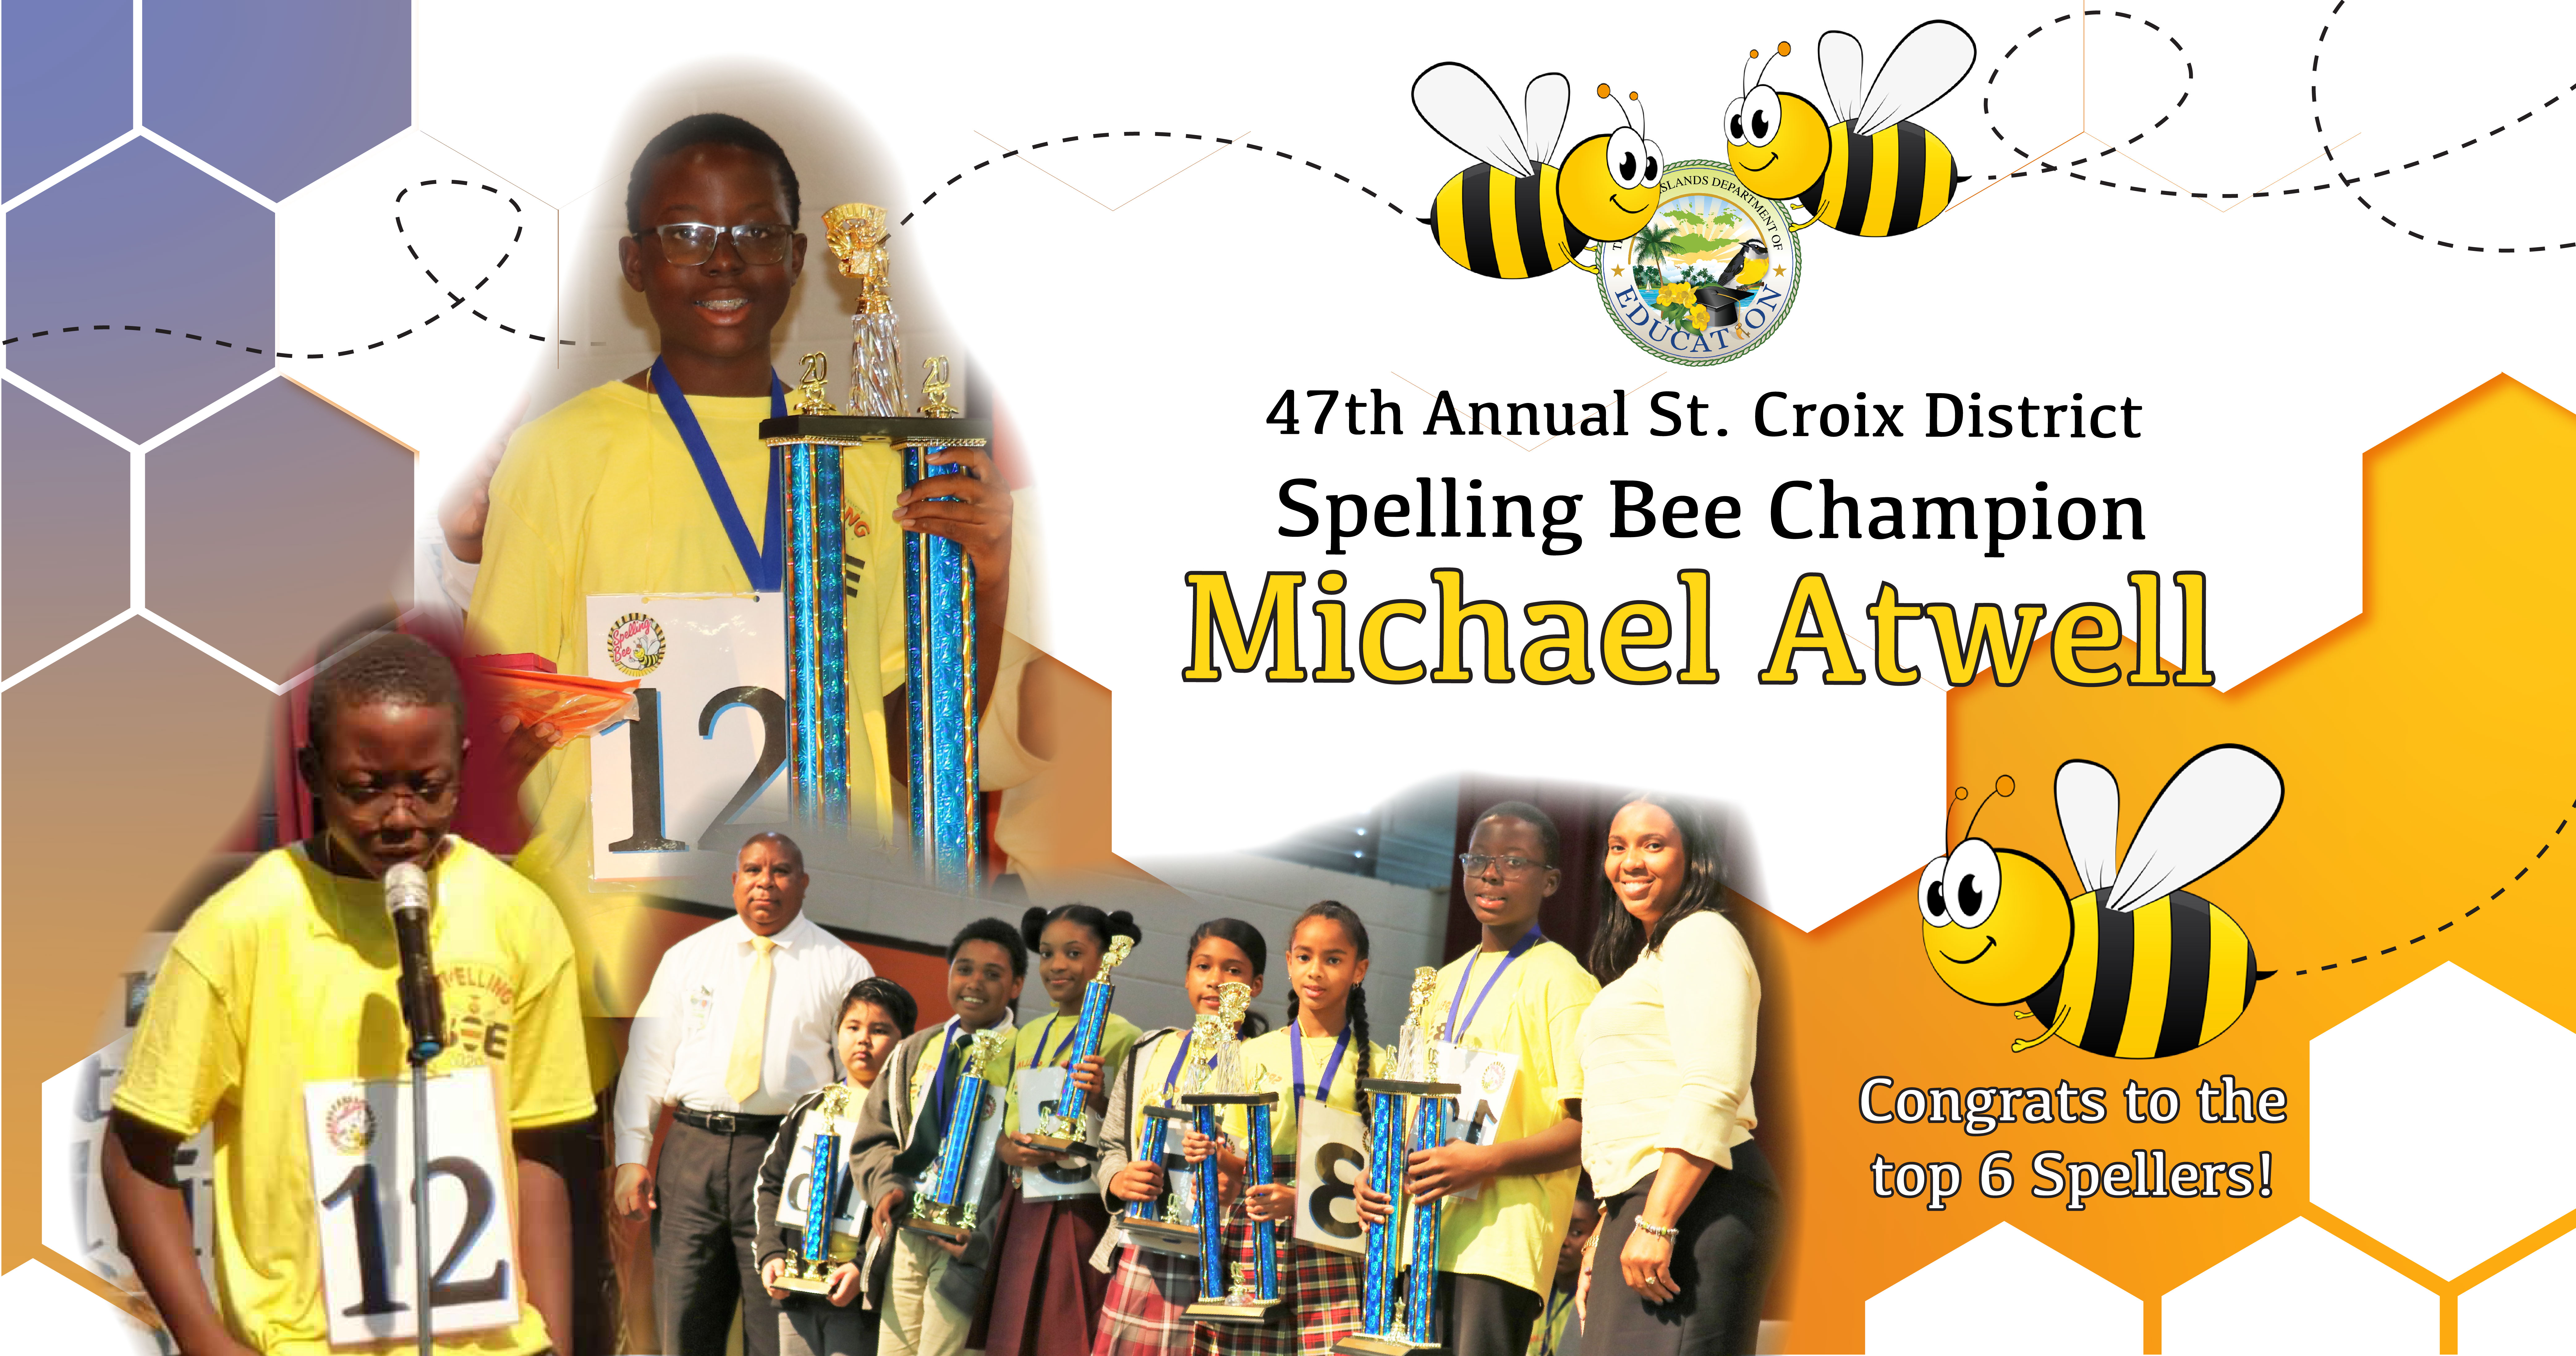 Michael Atwell wins 47th Annual St. Croix District Spelling Bee